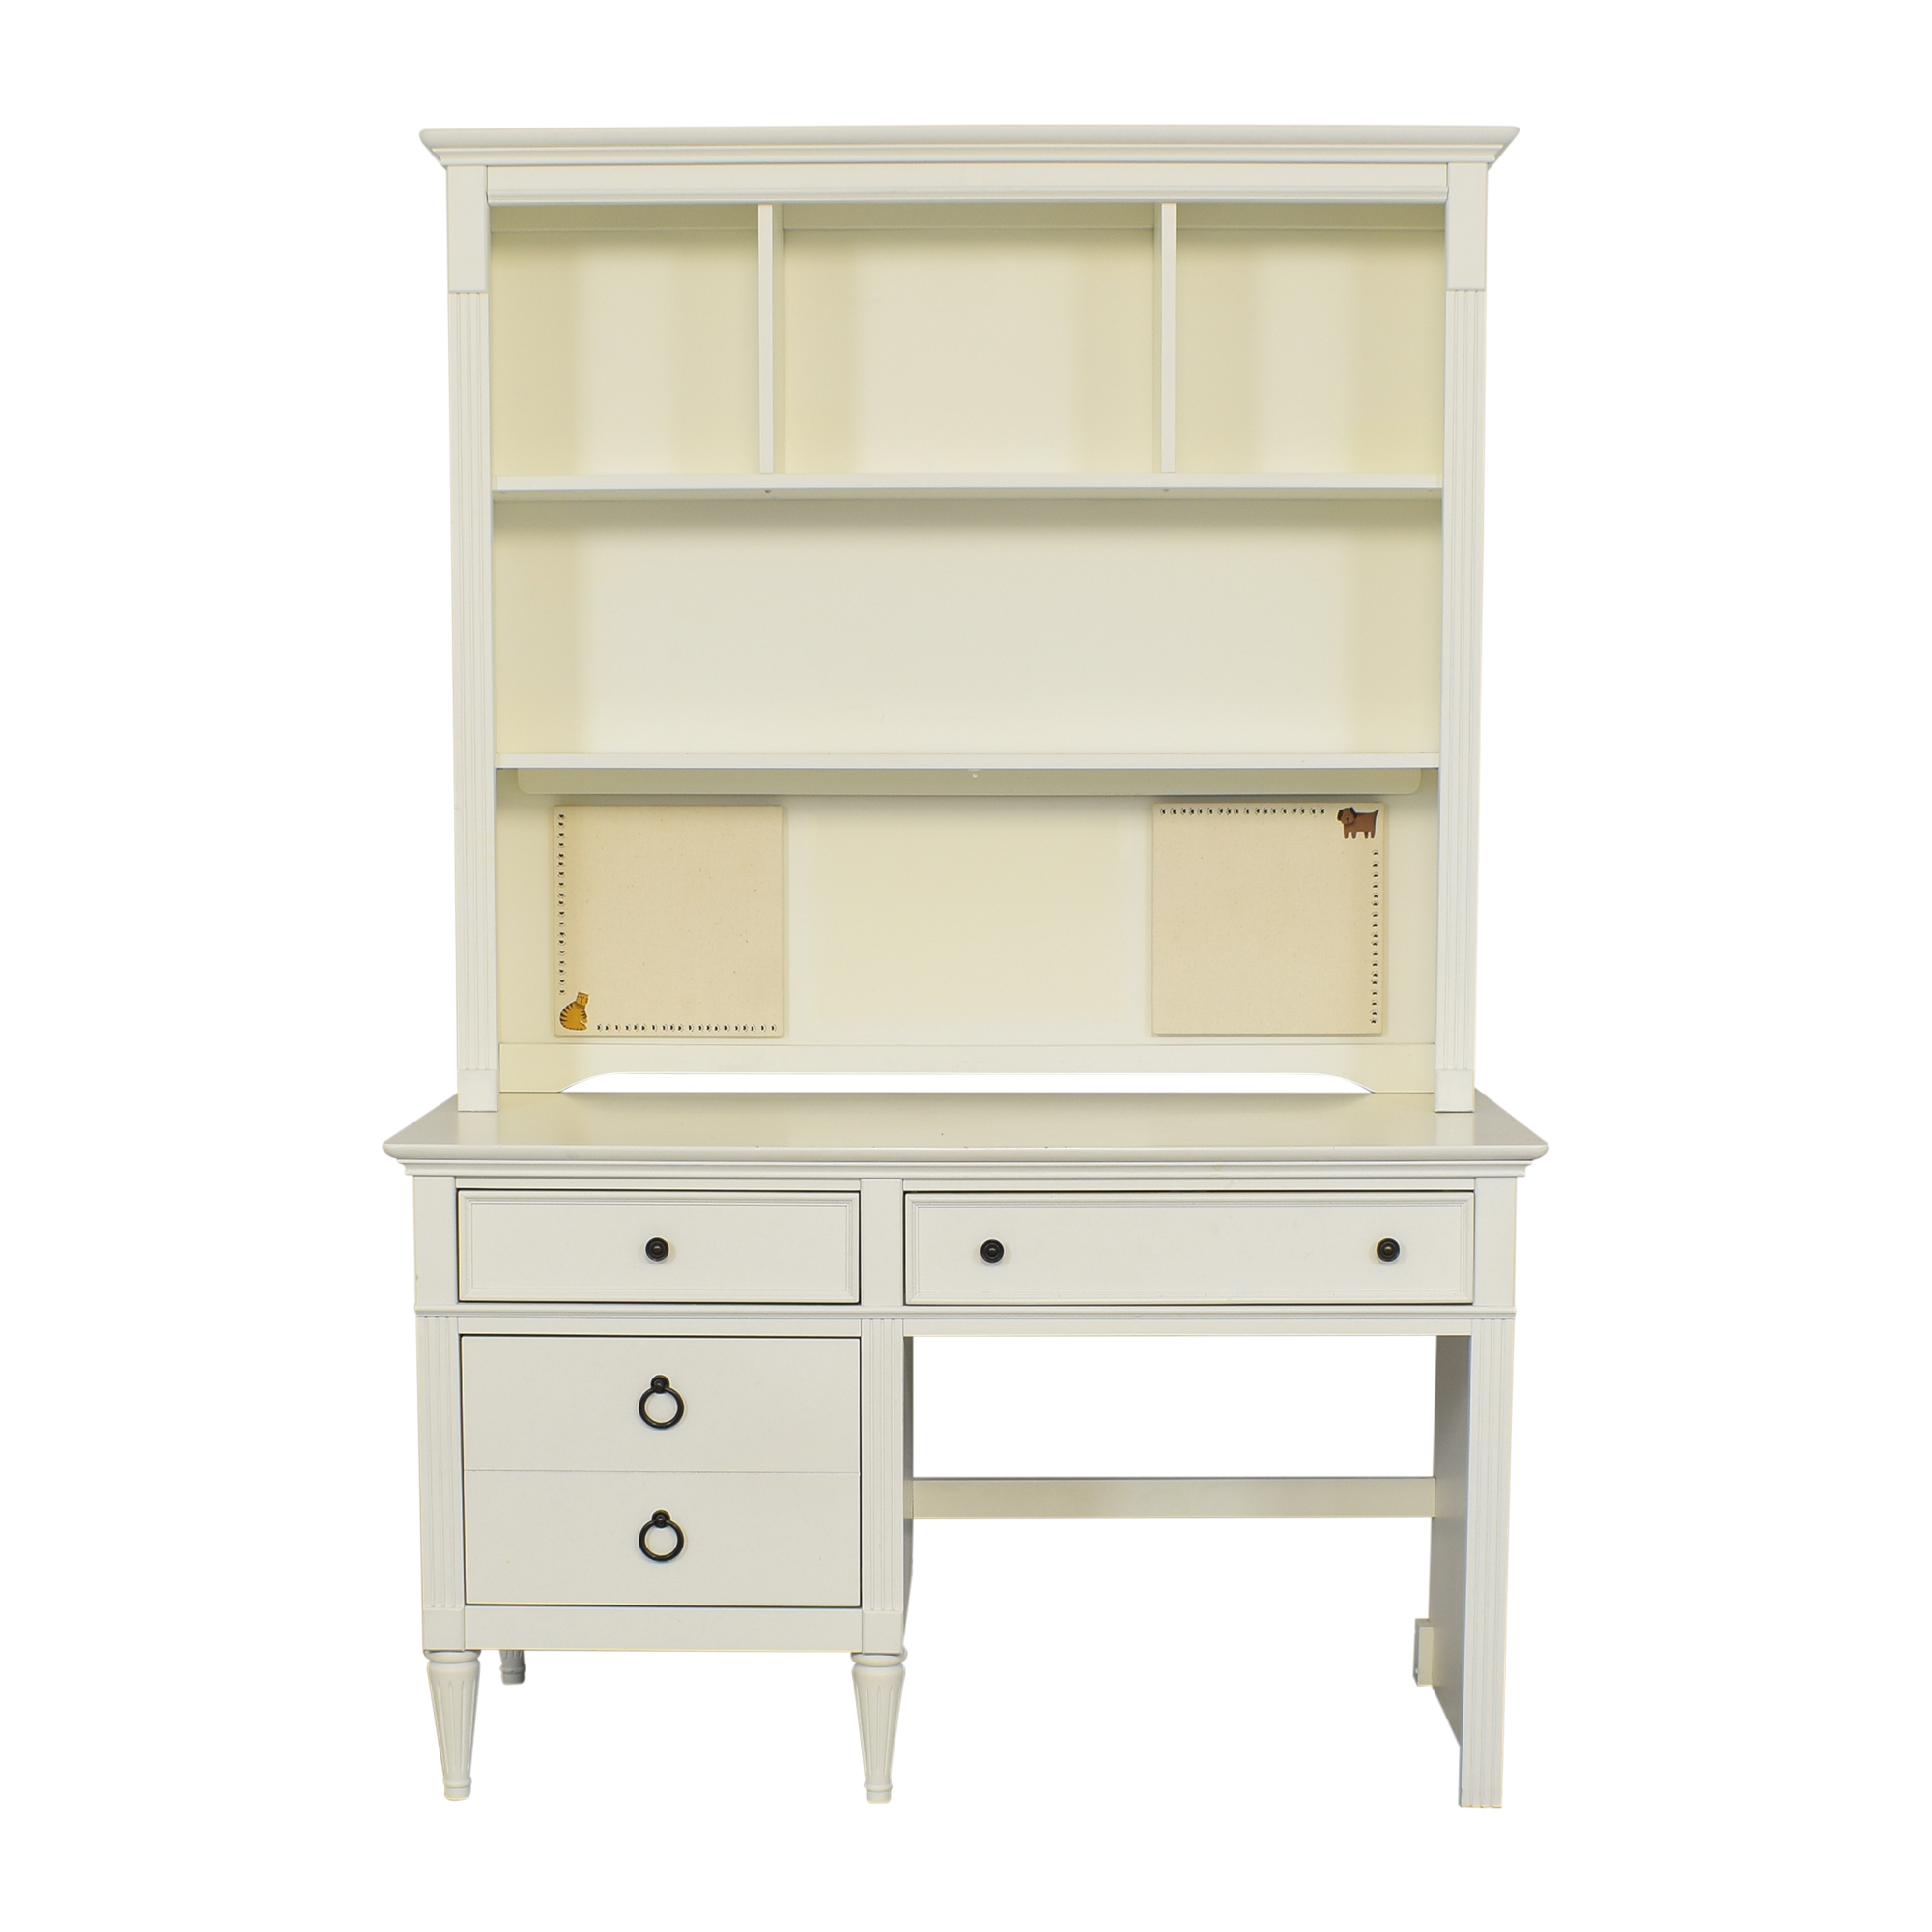 AP Industries Mary-Kate and Ashley Collection Desk with Hutch nyc